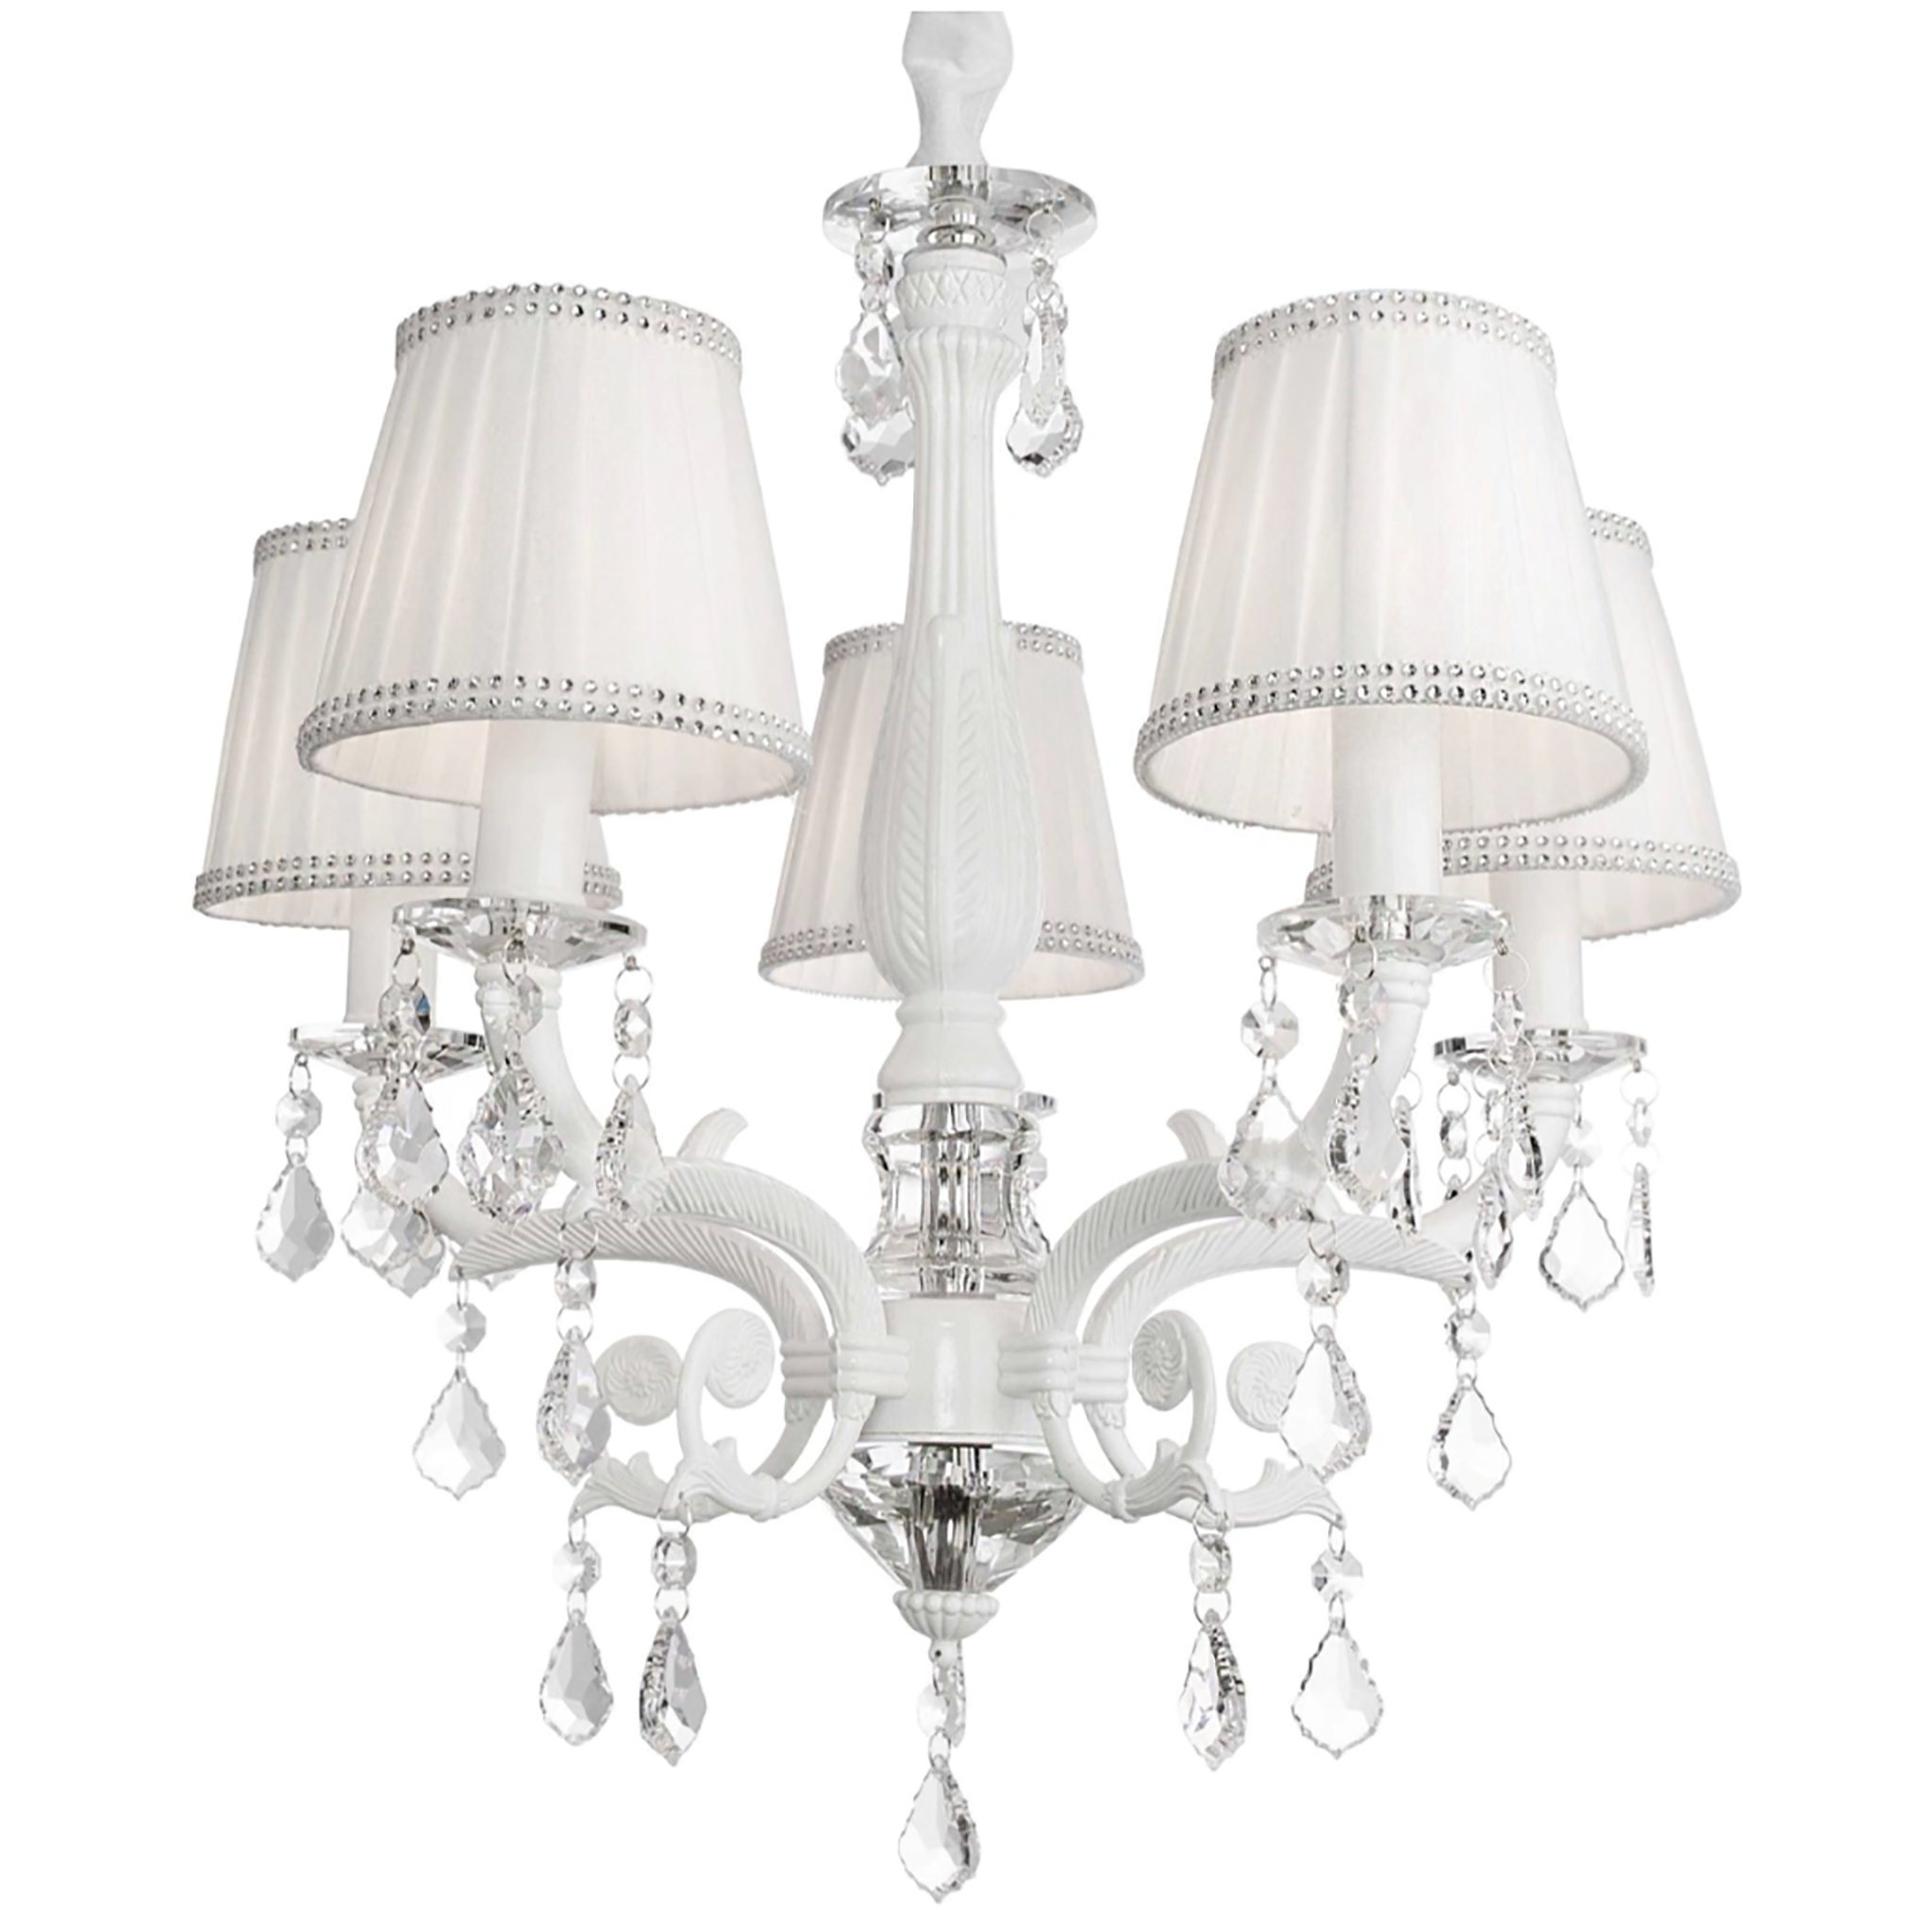 Victoria Chandelier With White Shade, 5-Light In 2019 inside Corneau 5-Light Chandeliers (Image 29 of 30)